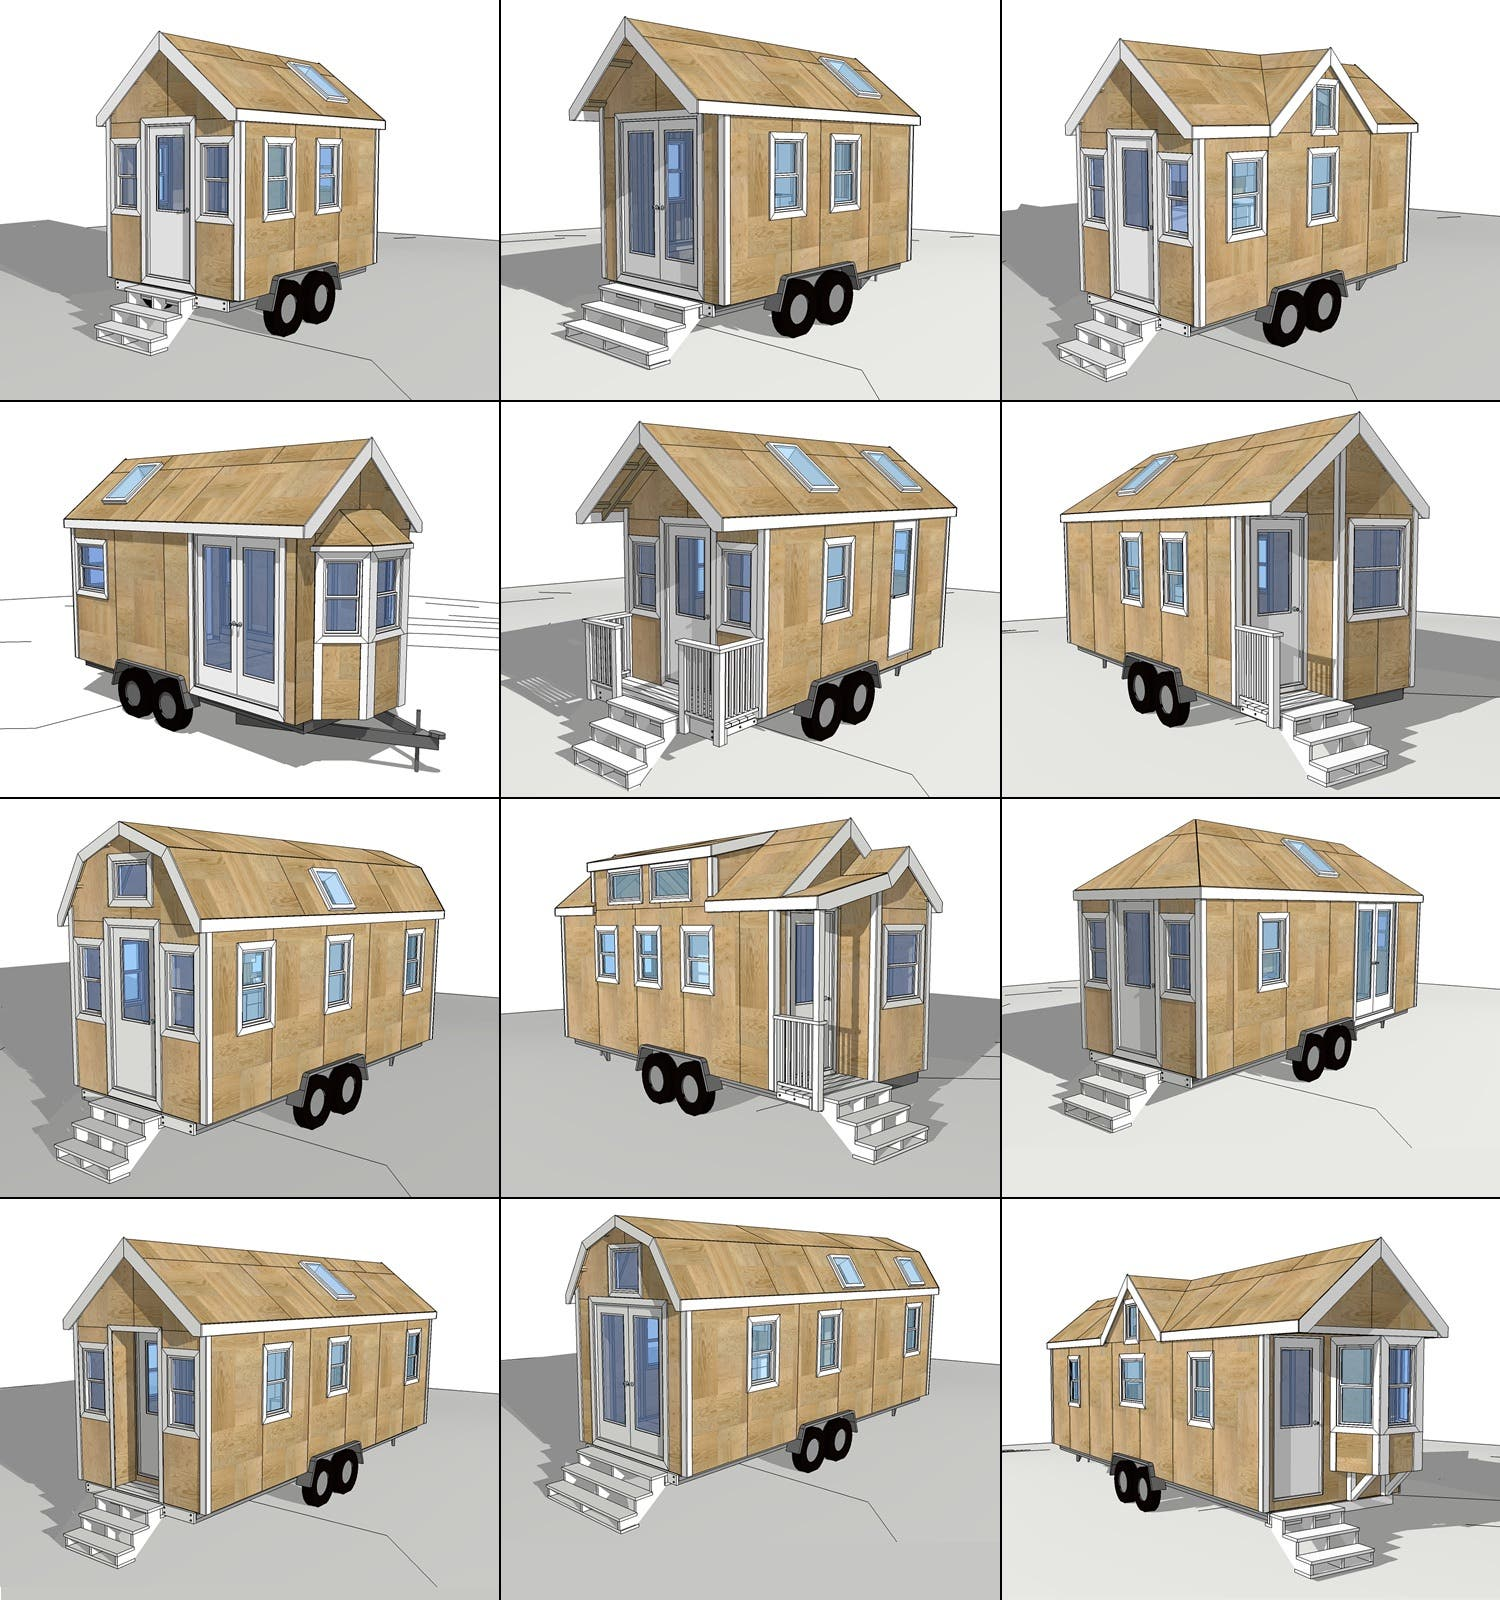 12 plan bundle 5 days 79 for Small house plans images